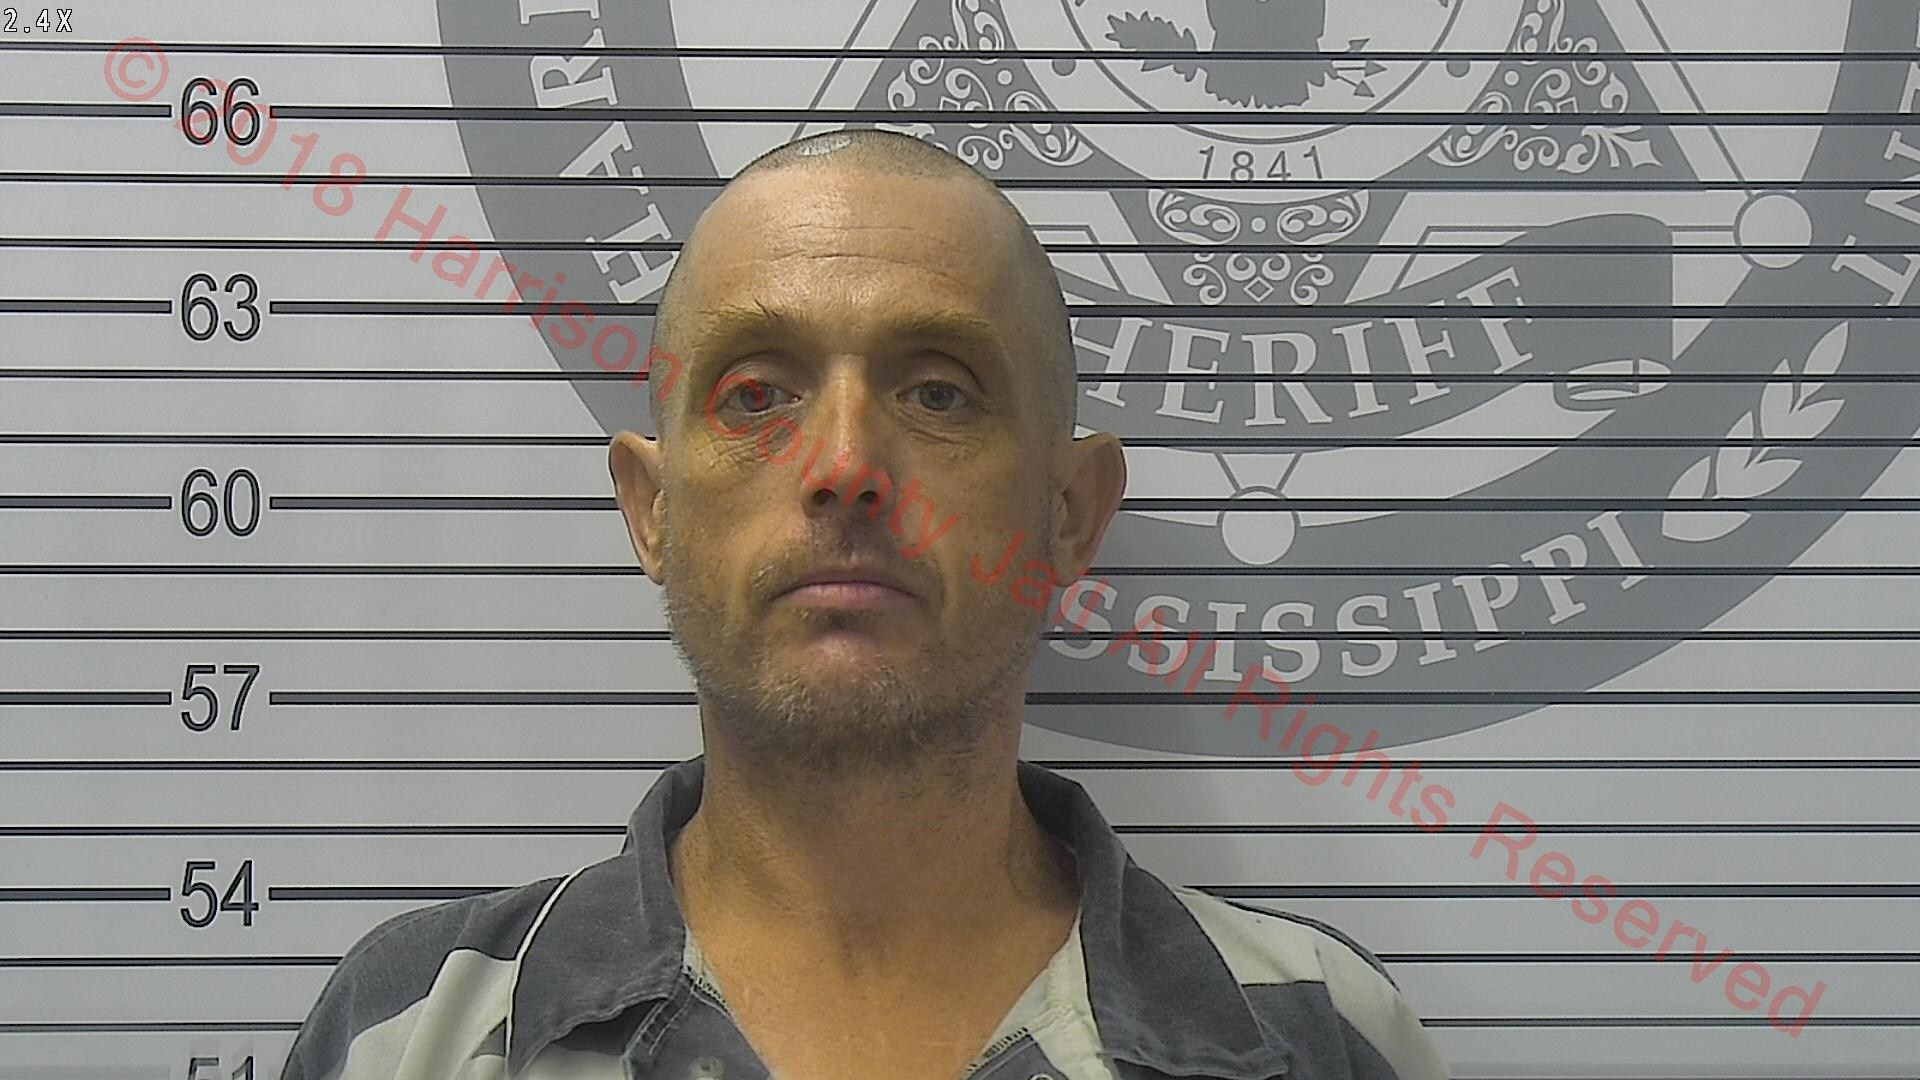 SUSPECT ARRESTED FOR BURGLARY AFTER VIDEO SURVEILLANCE